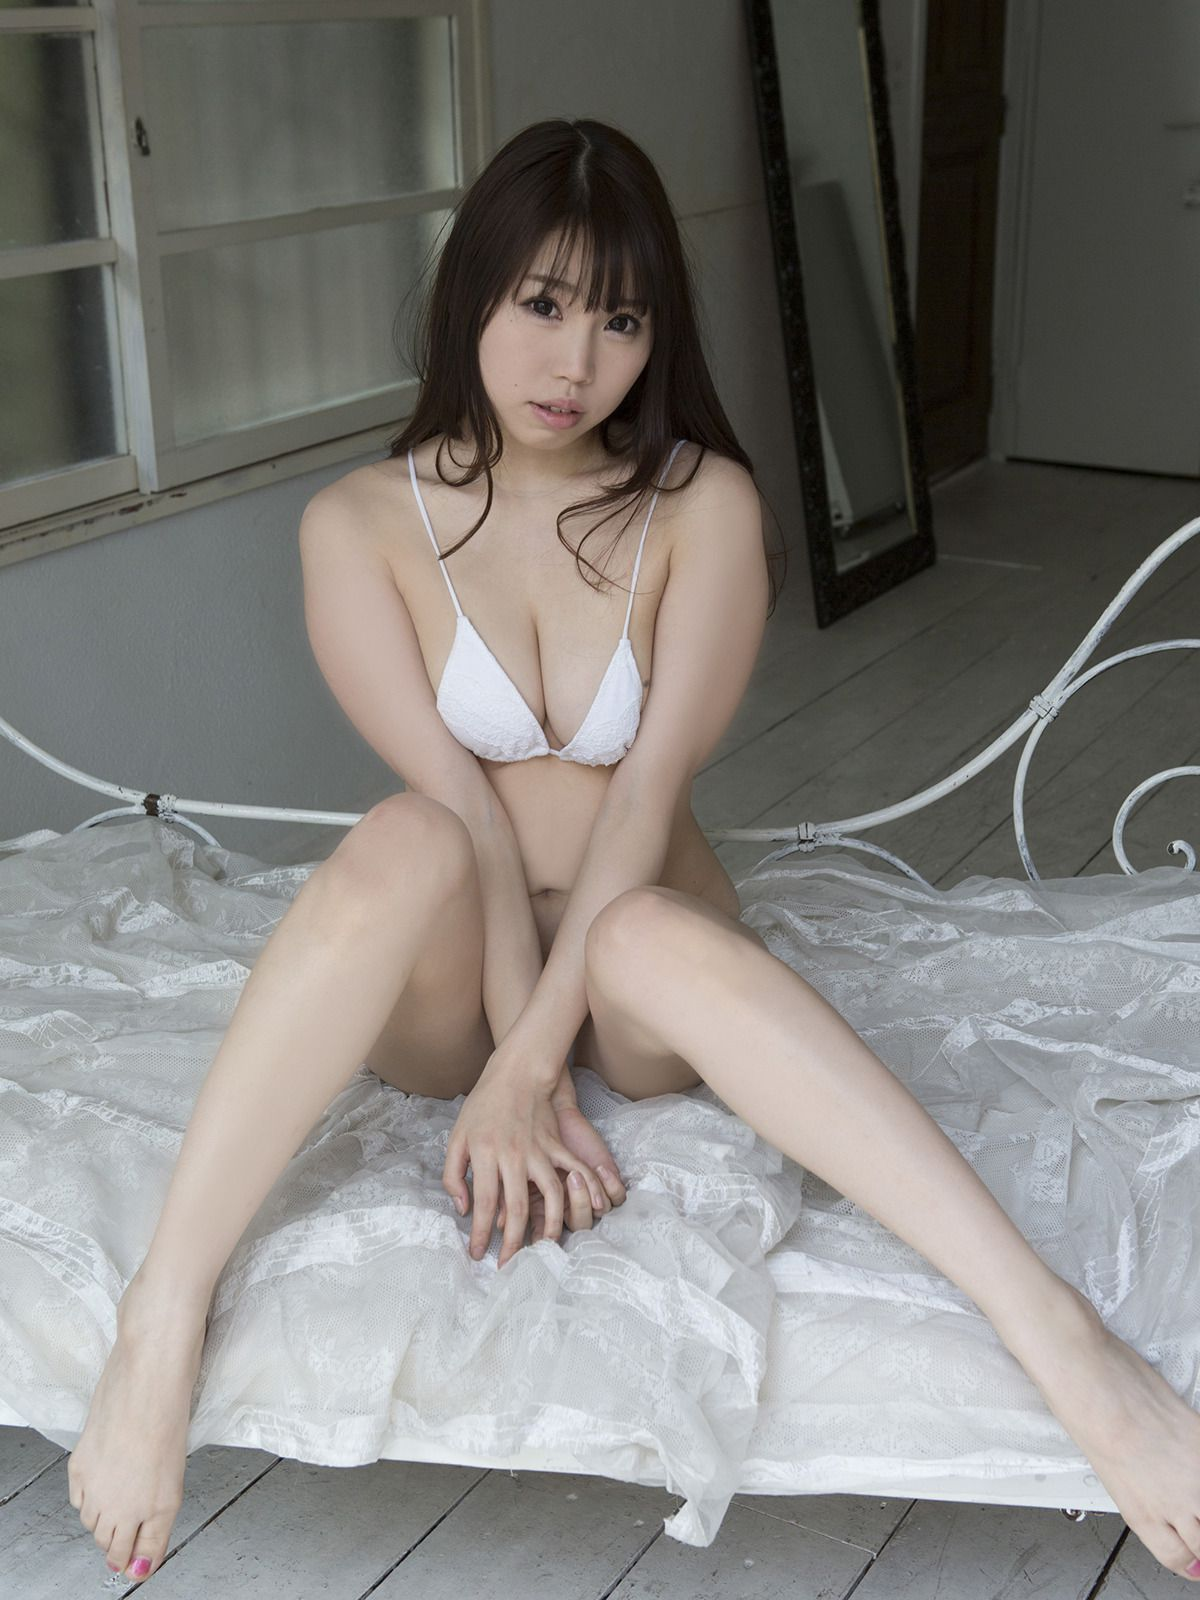 Mai Tsukamoto is naturally energized by the ample G breast011